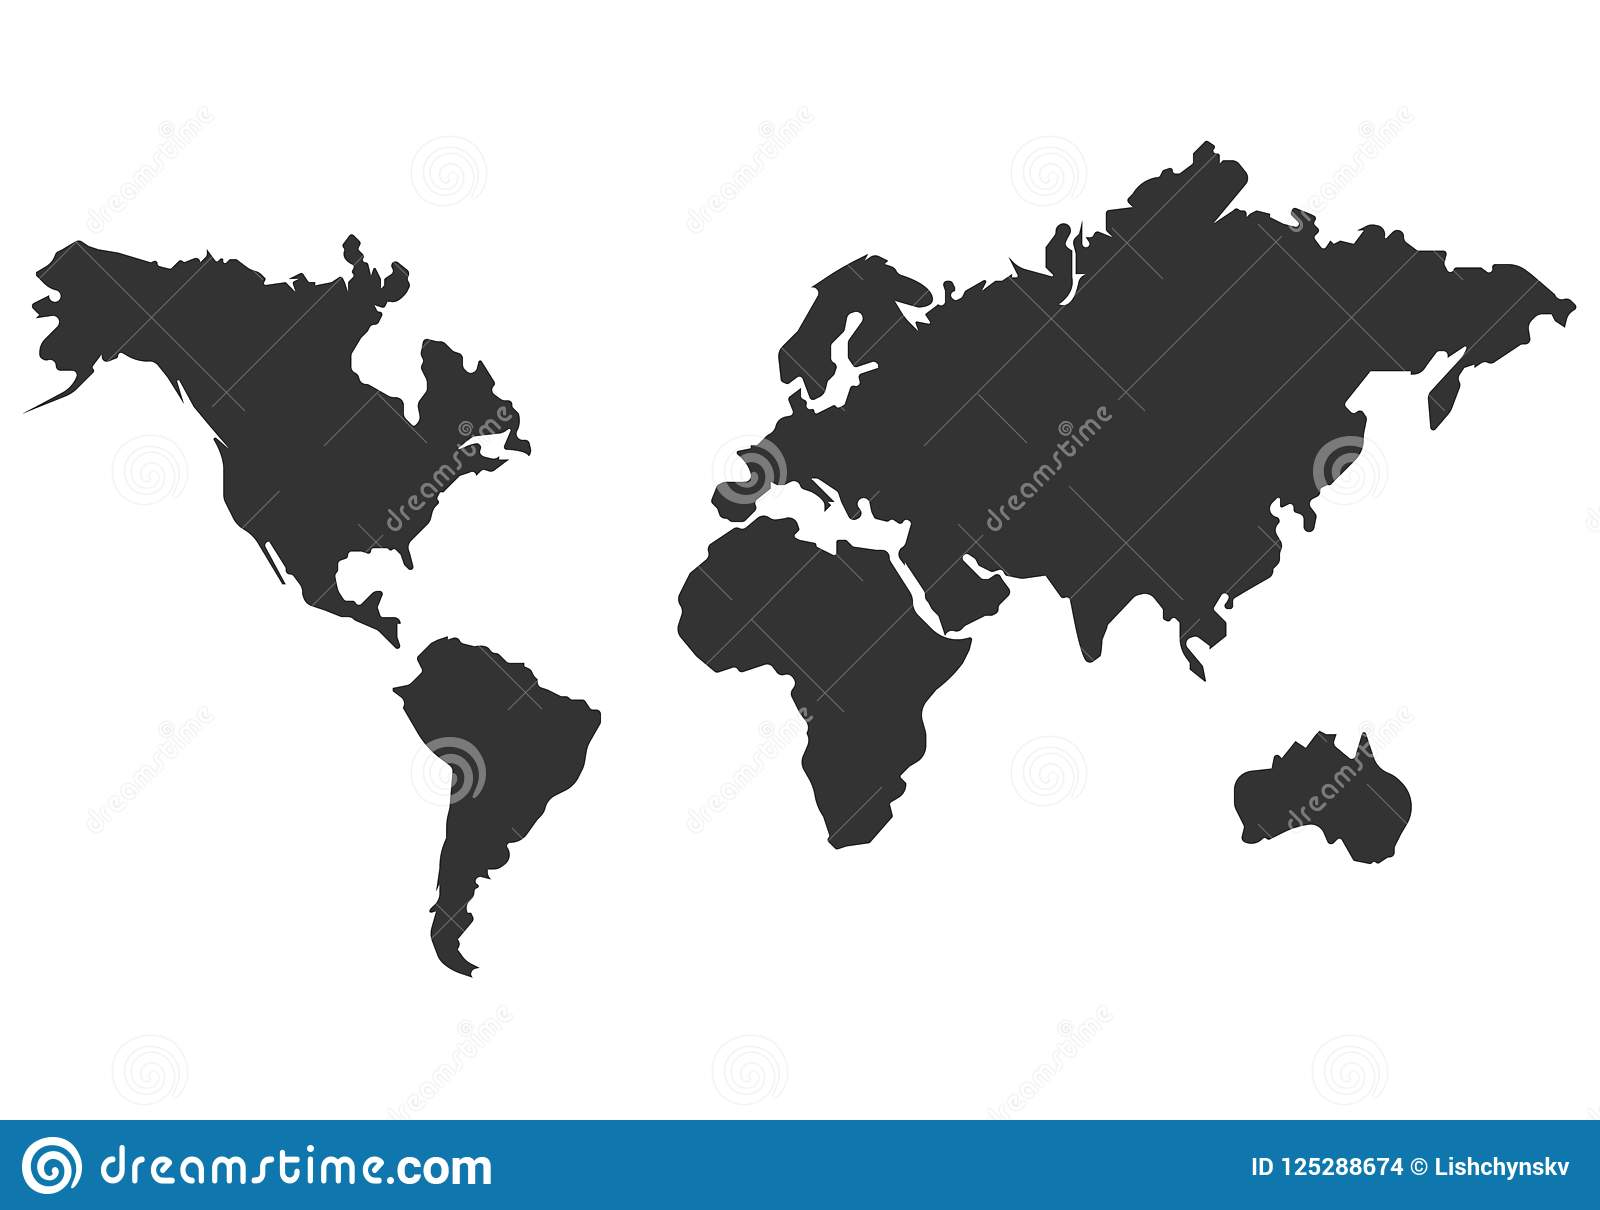 Flat World Map Vector.World Map Vector Icon Simple Flat Design Stock Illustration